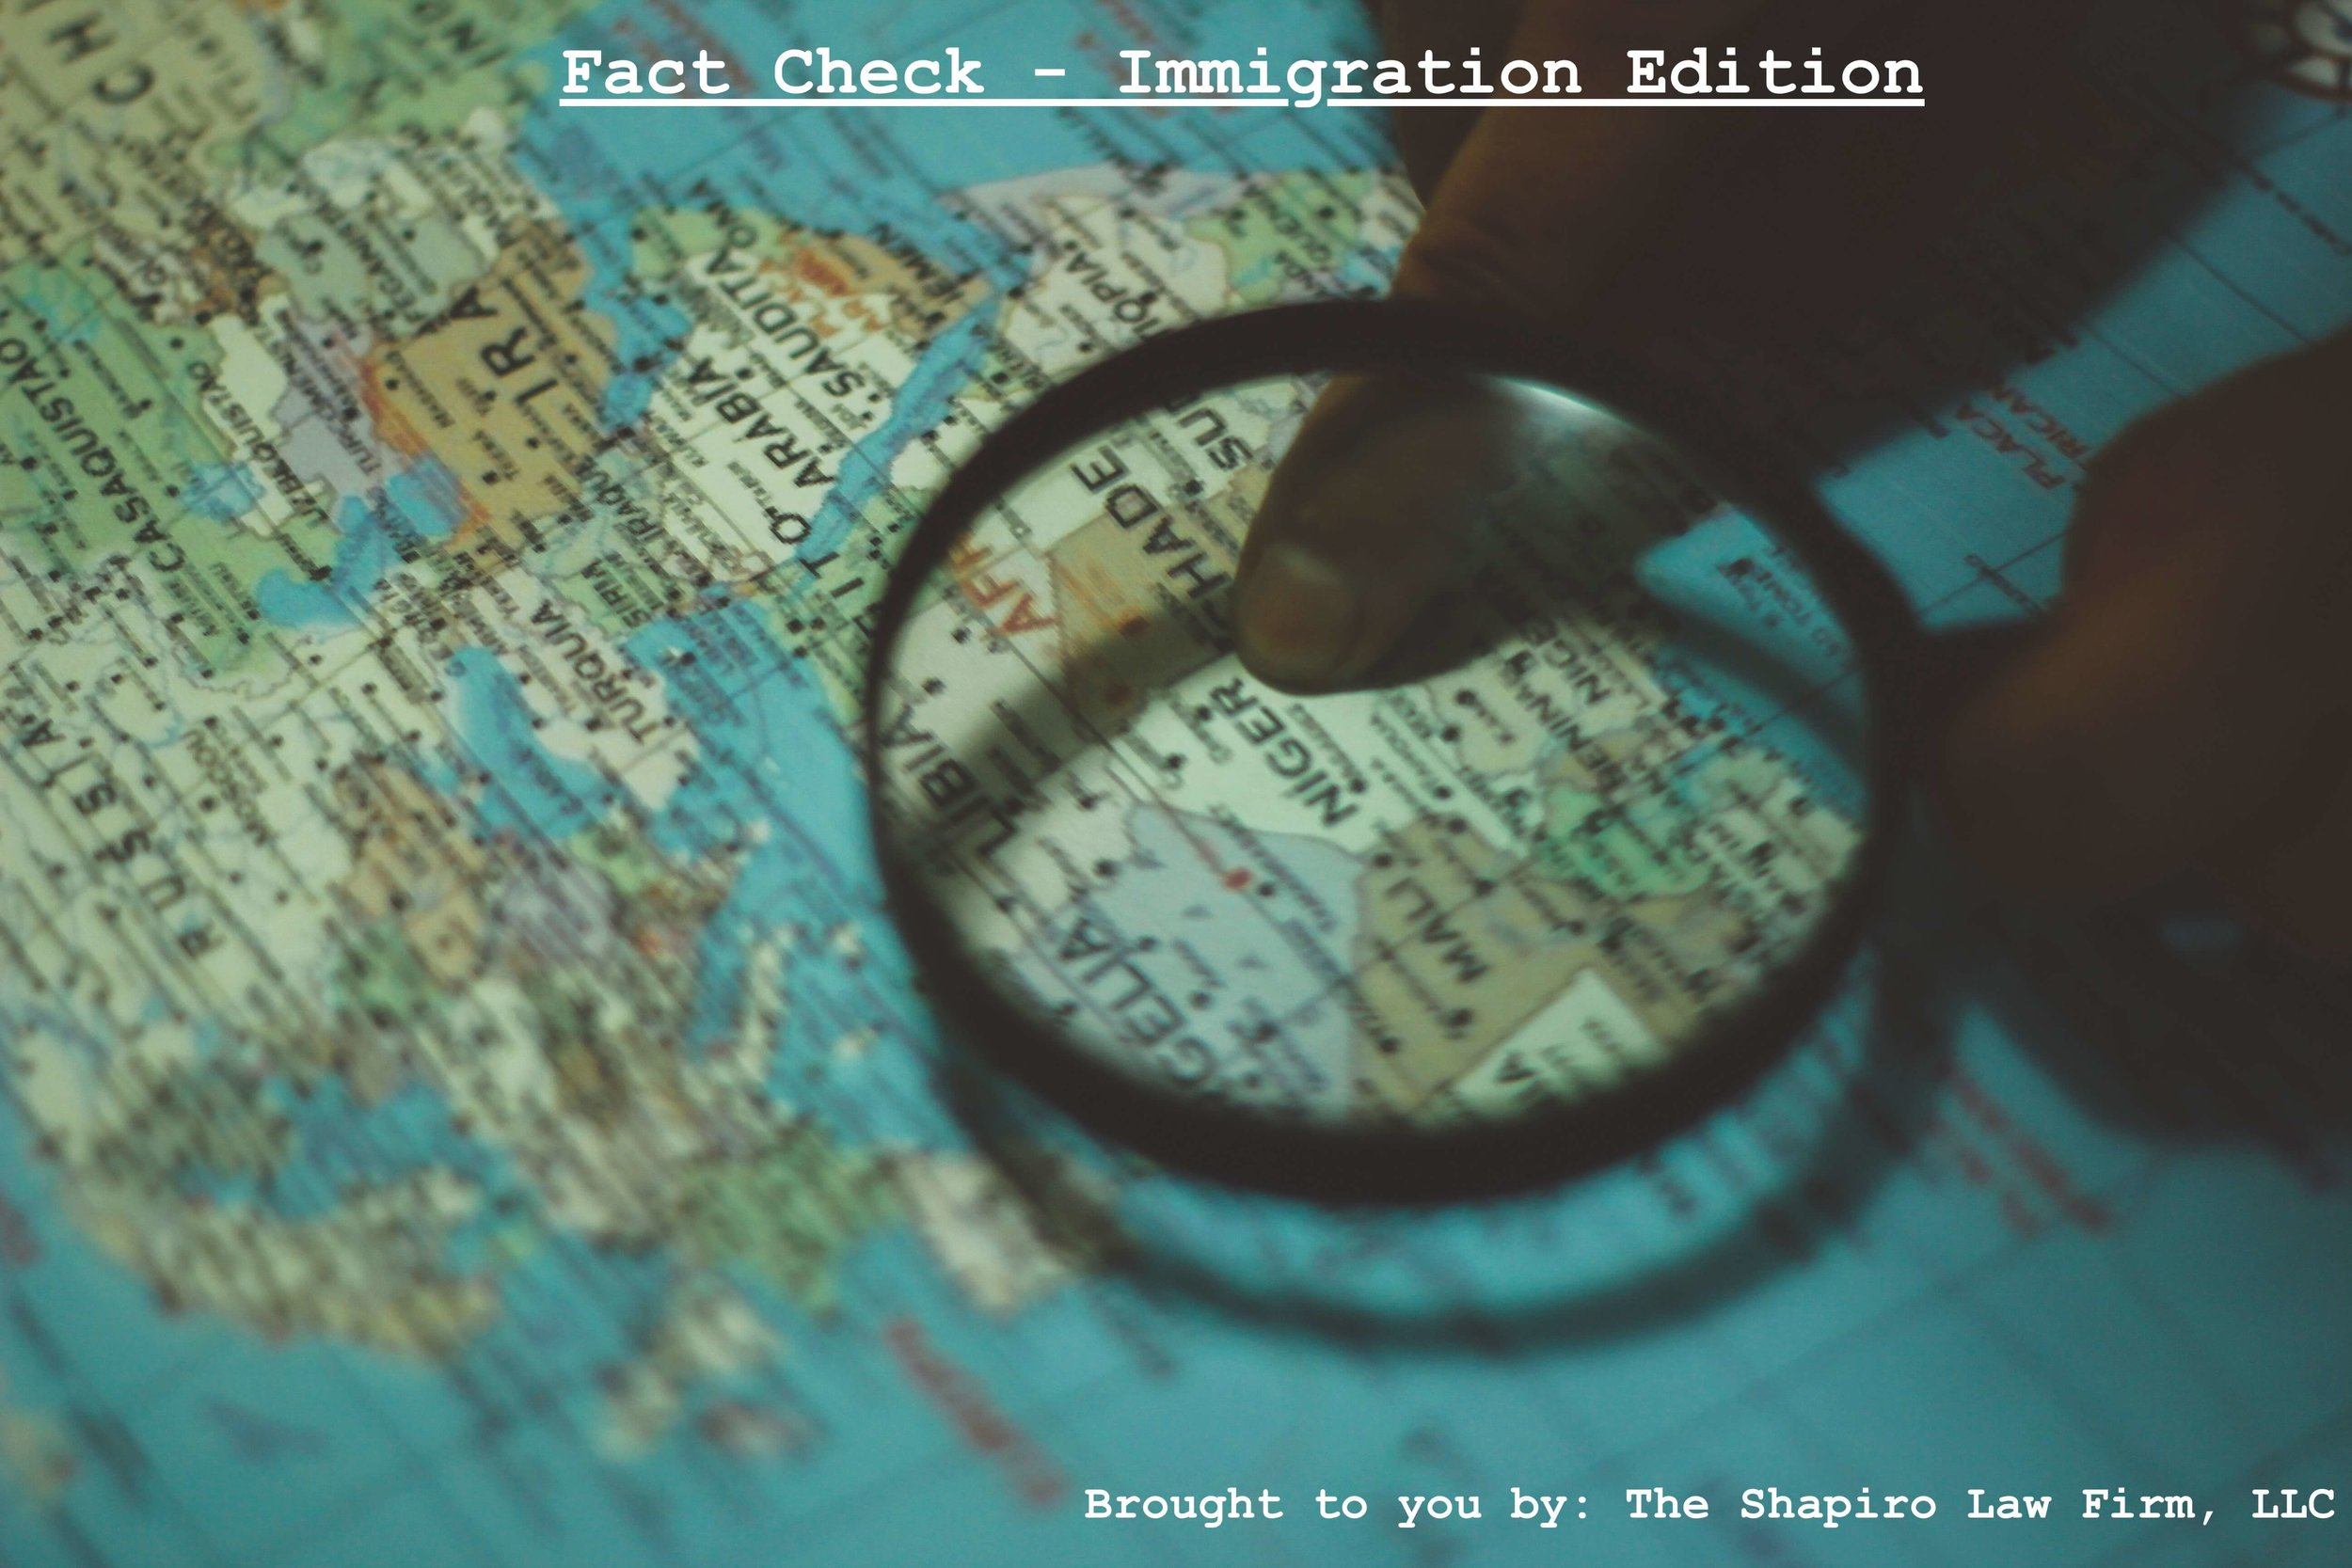 Fact Check - Immigration Edition